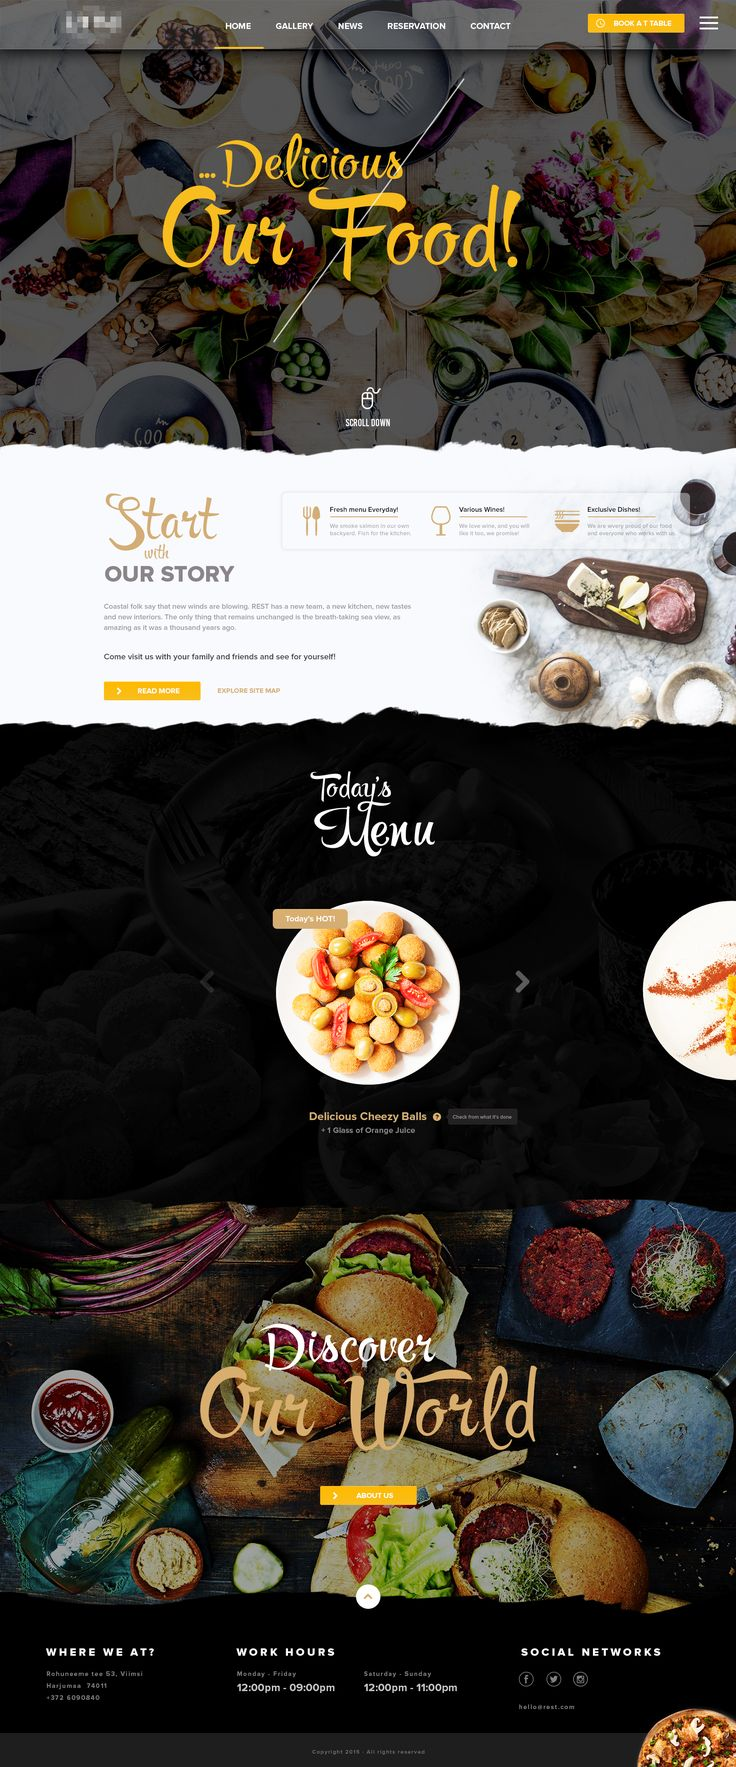 Week 7-3/6: I like restaurant website. I like how they have a sider showing the meals of the day. It is very creative and neat.. The UX Blog podcast is also available on iTunes.